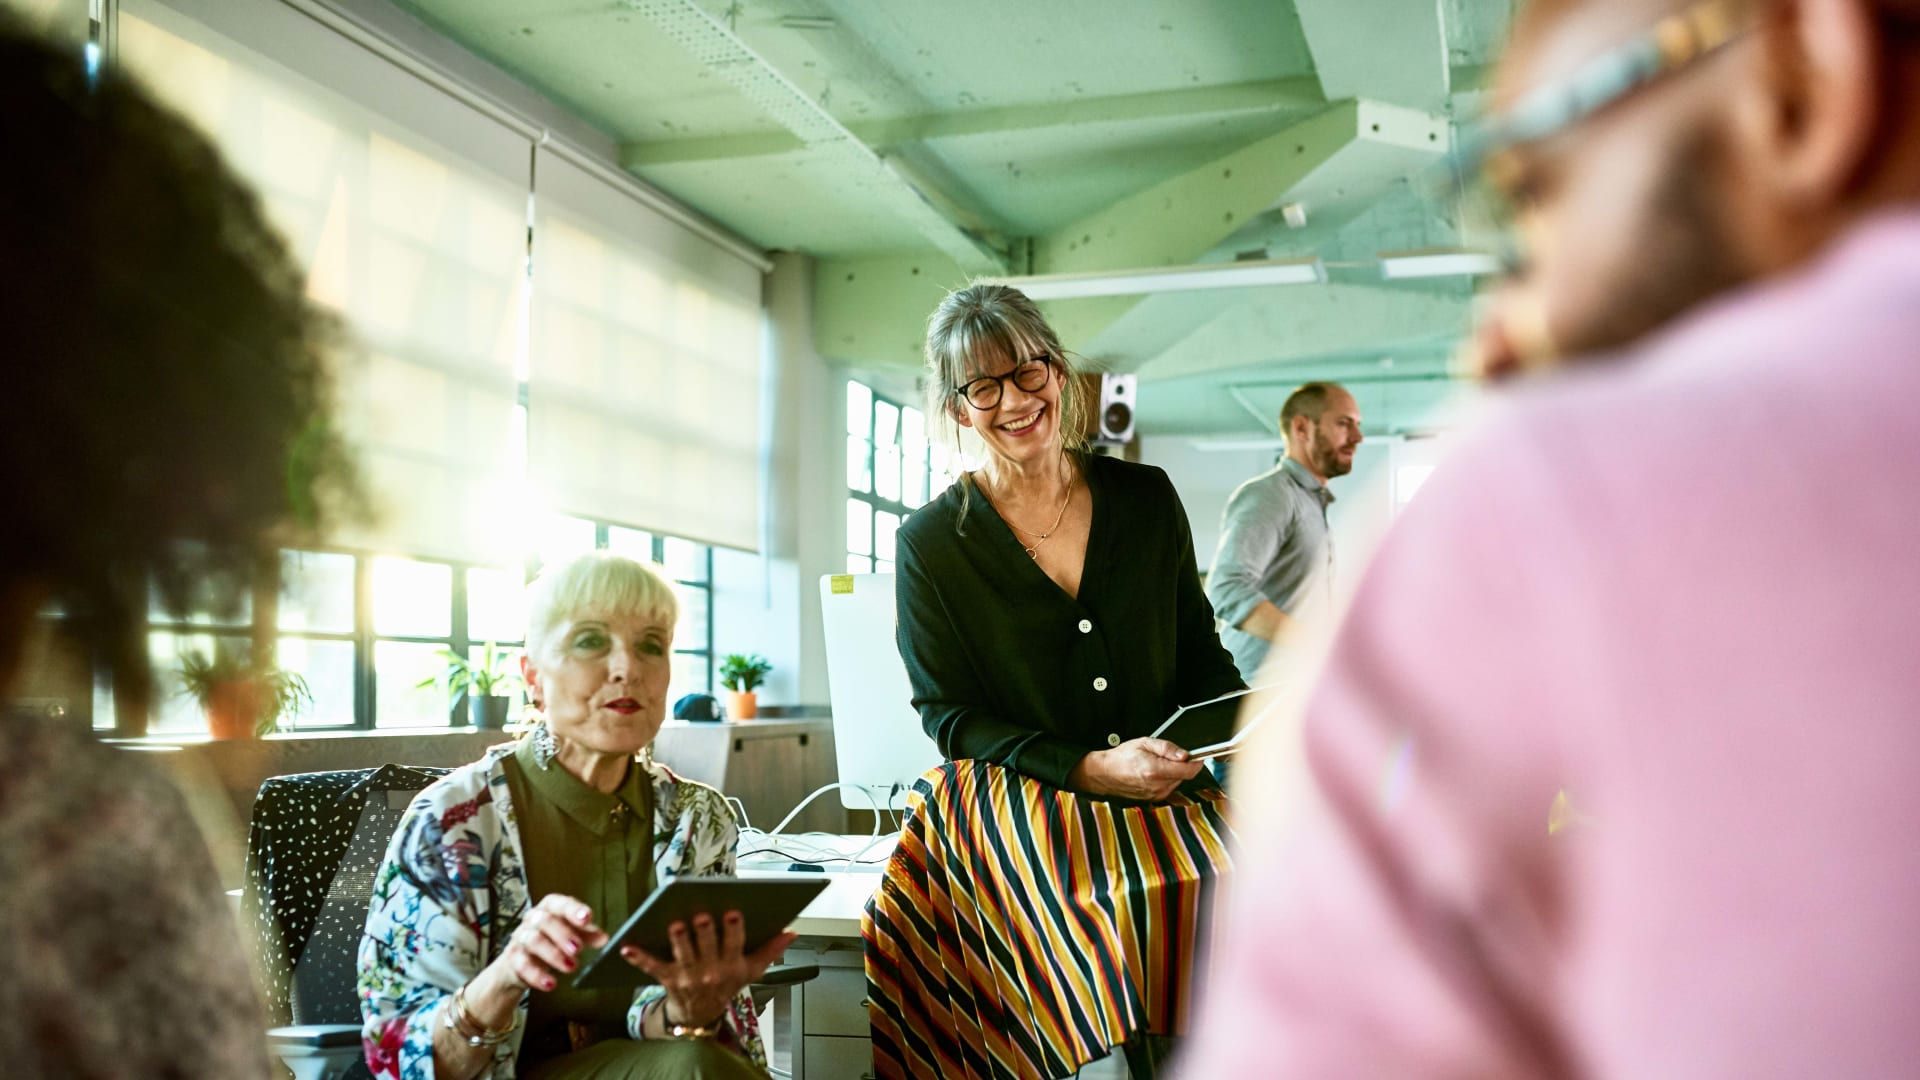 Nurture Your Company's People. Don't Just Figure Out How to Do Without Them